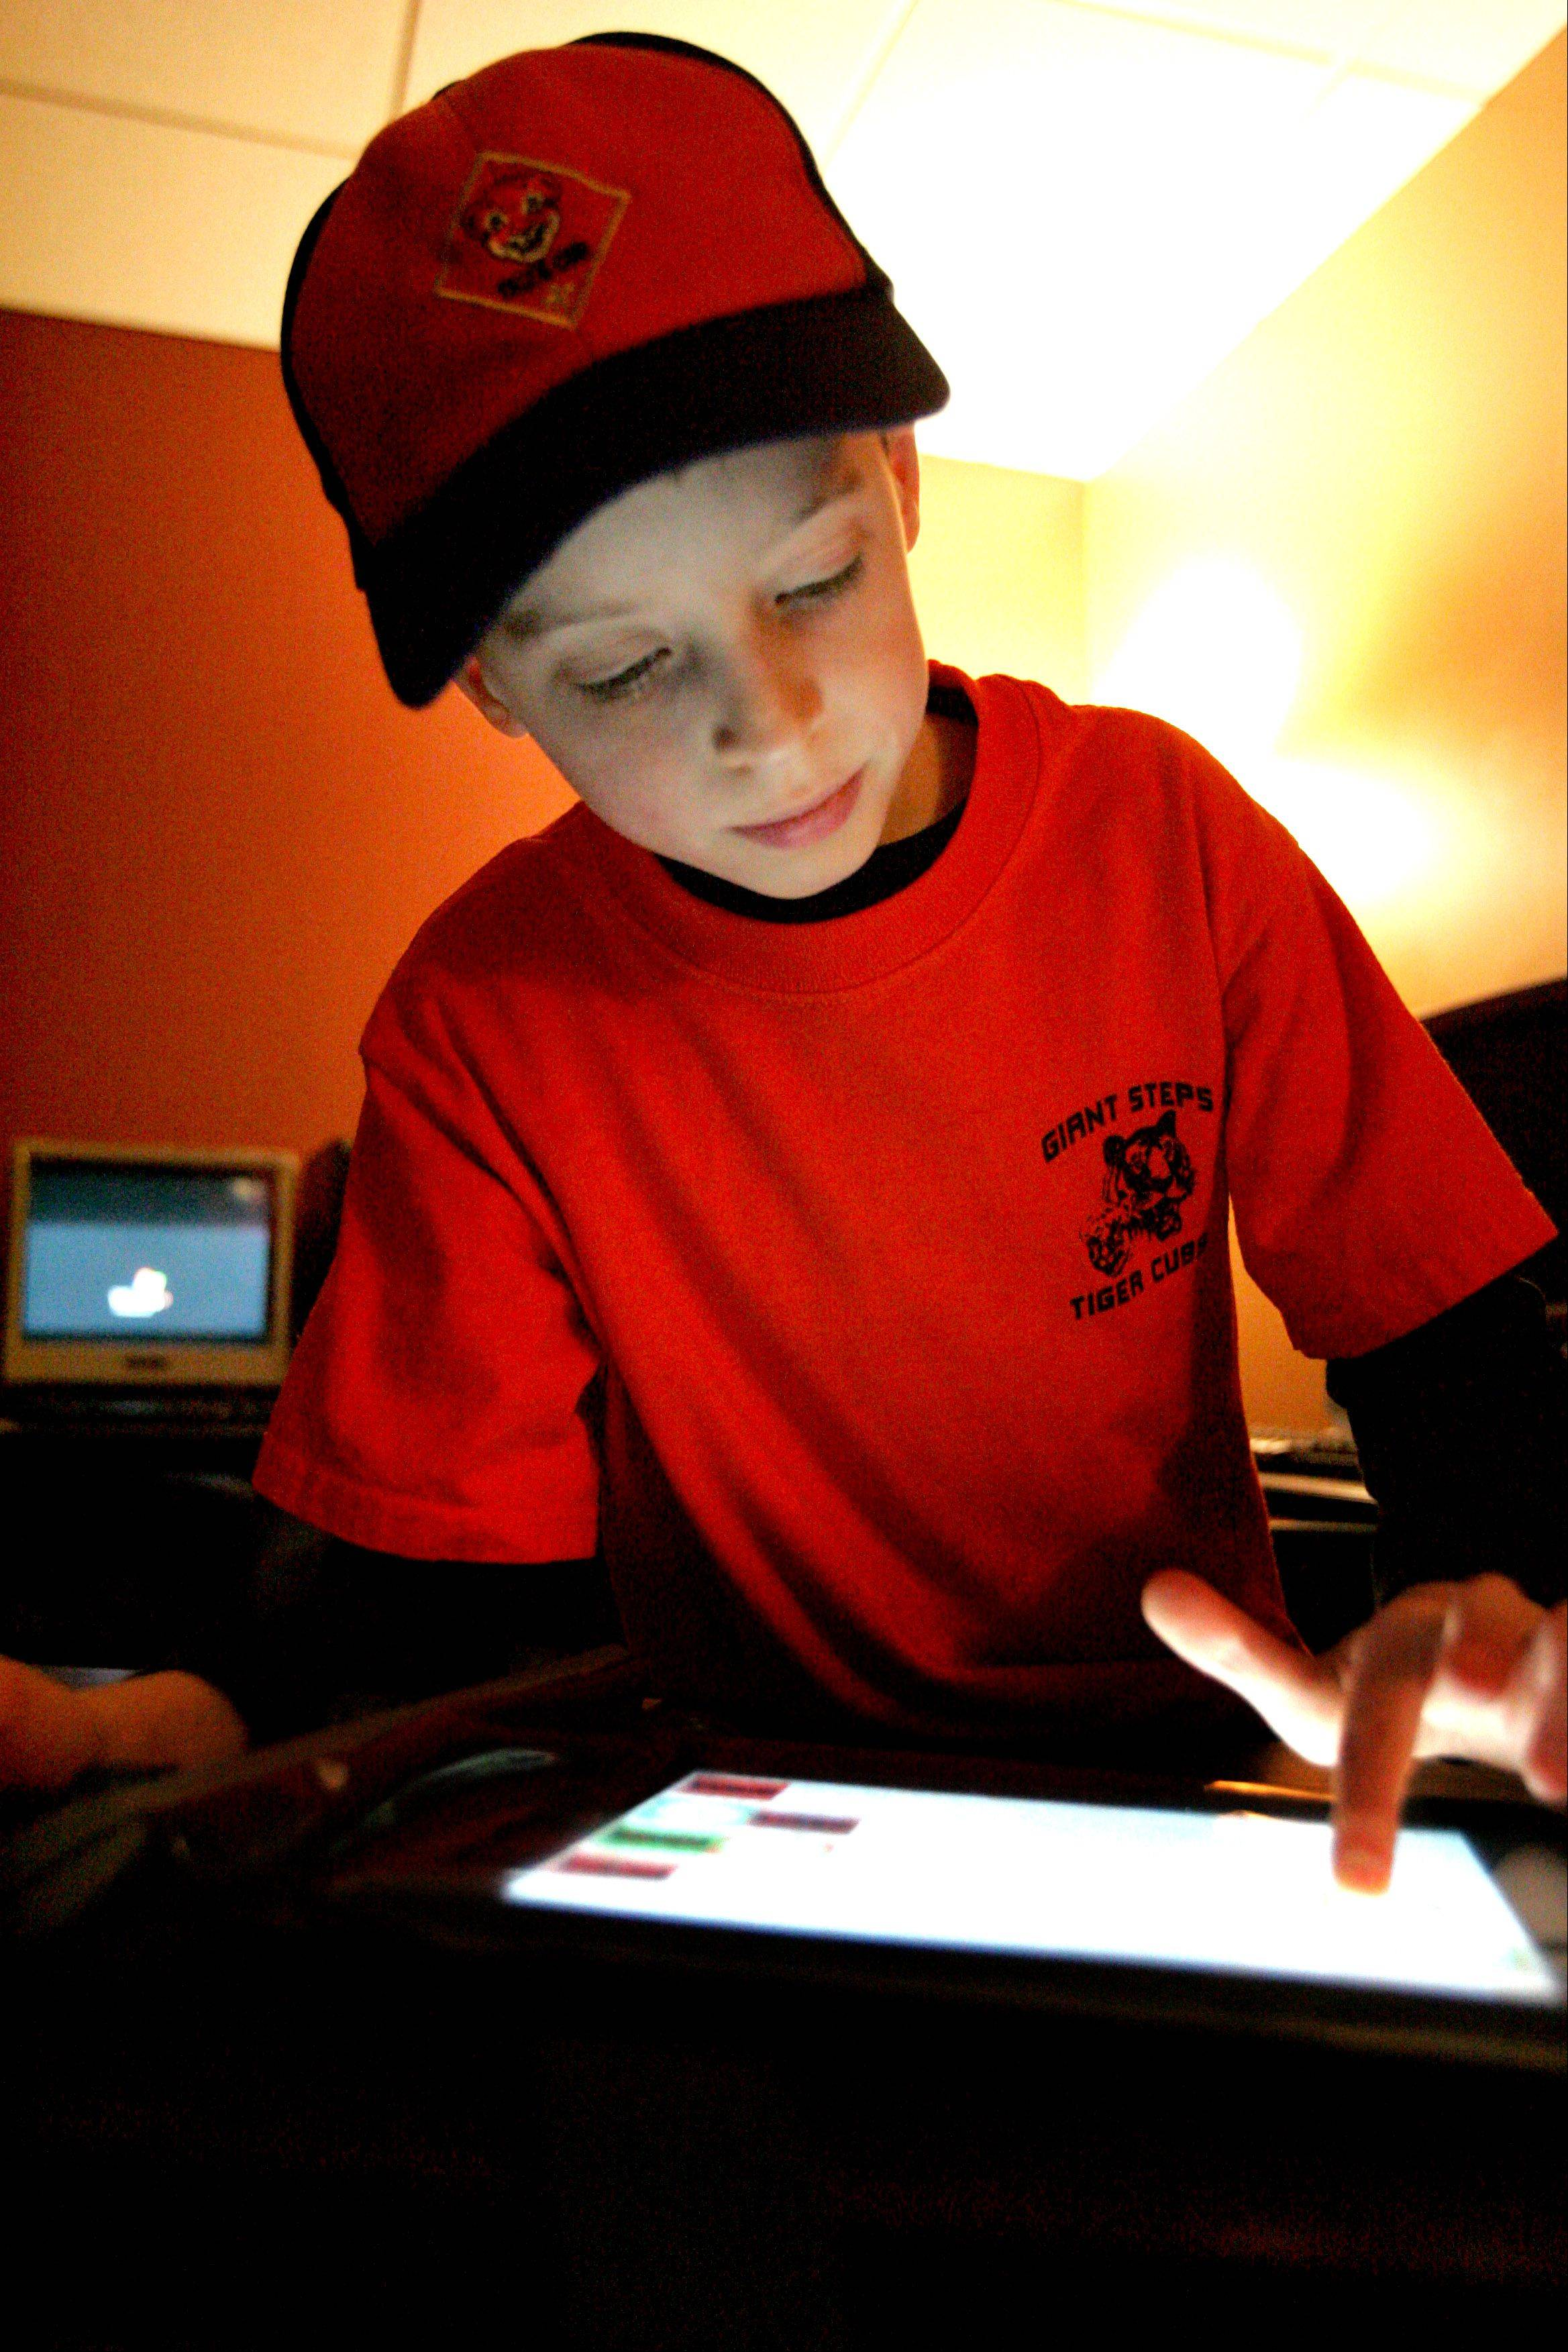 Joshua Brooks, 7 uses an iPad at Giant Steps school in Lisle. His mother, Lisa, said an iPad Joshua uses at home helps him complete tasks and learn how to behave in social situations.